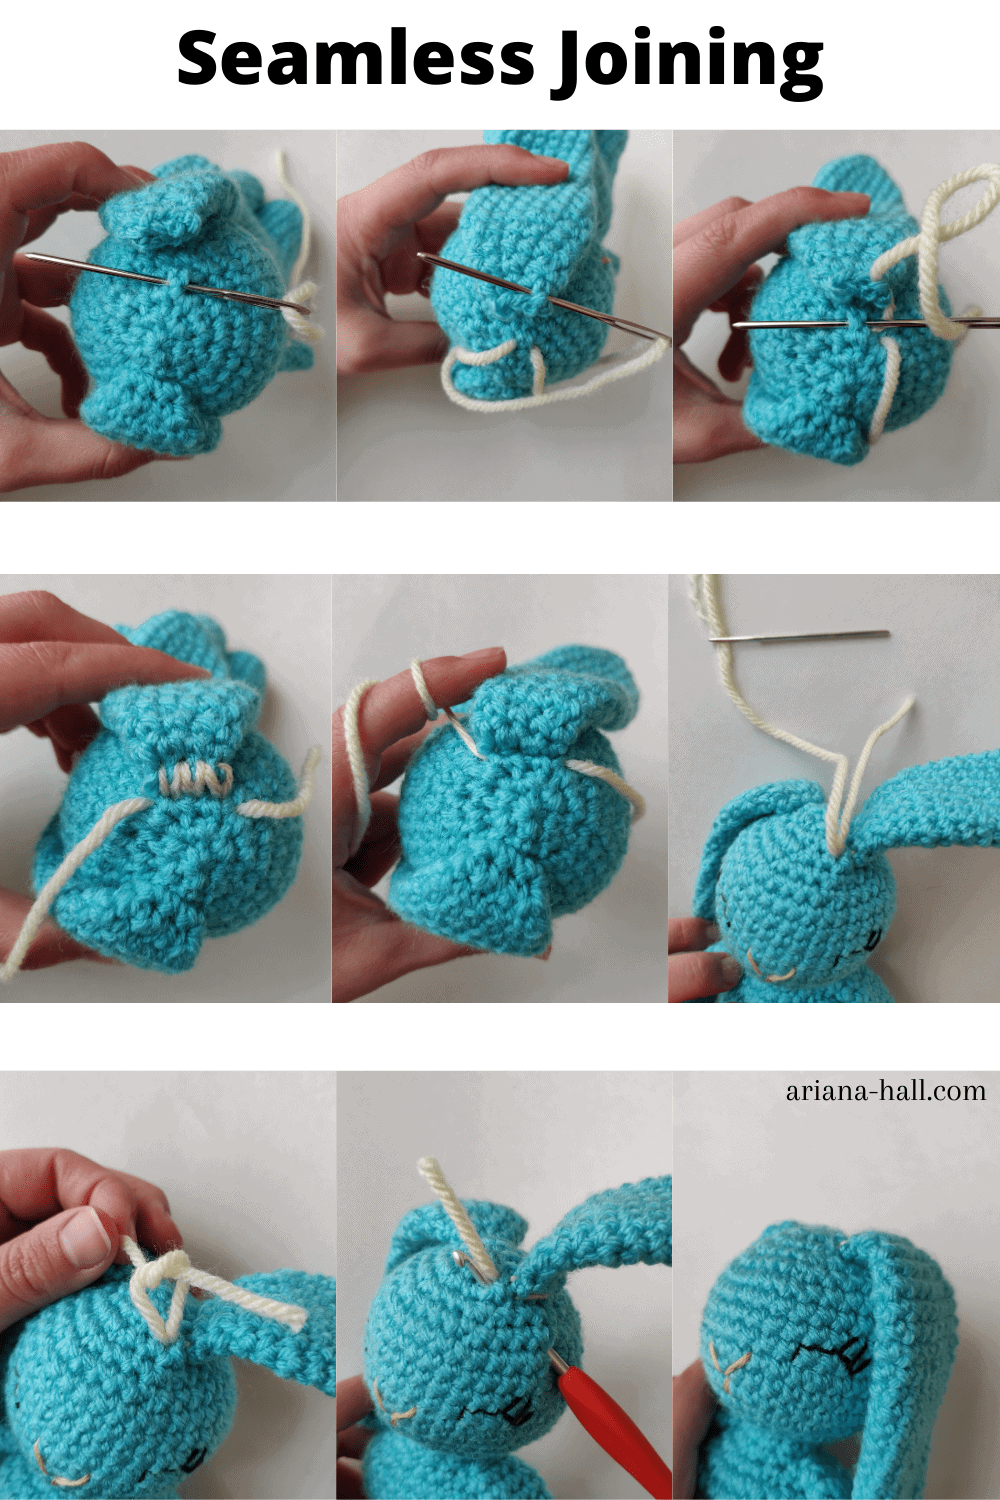 How to seamless Join amigurumi part steps.